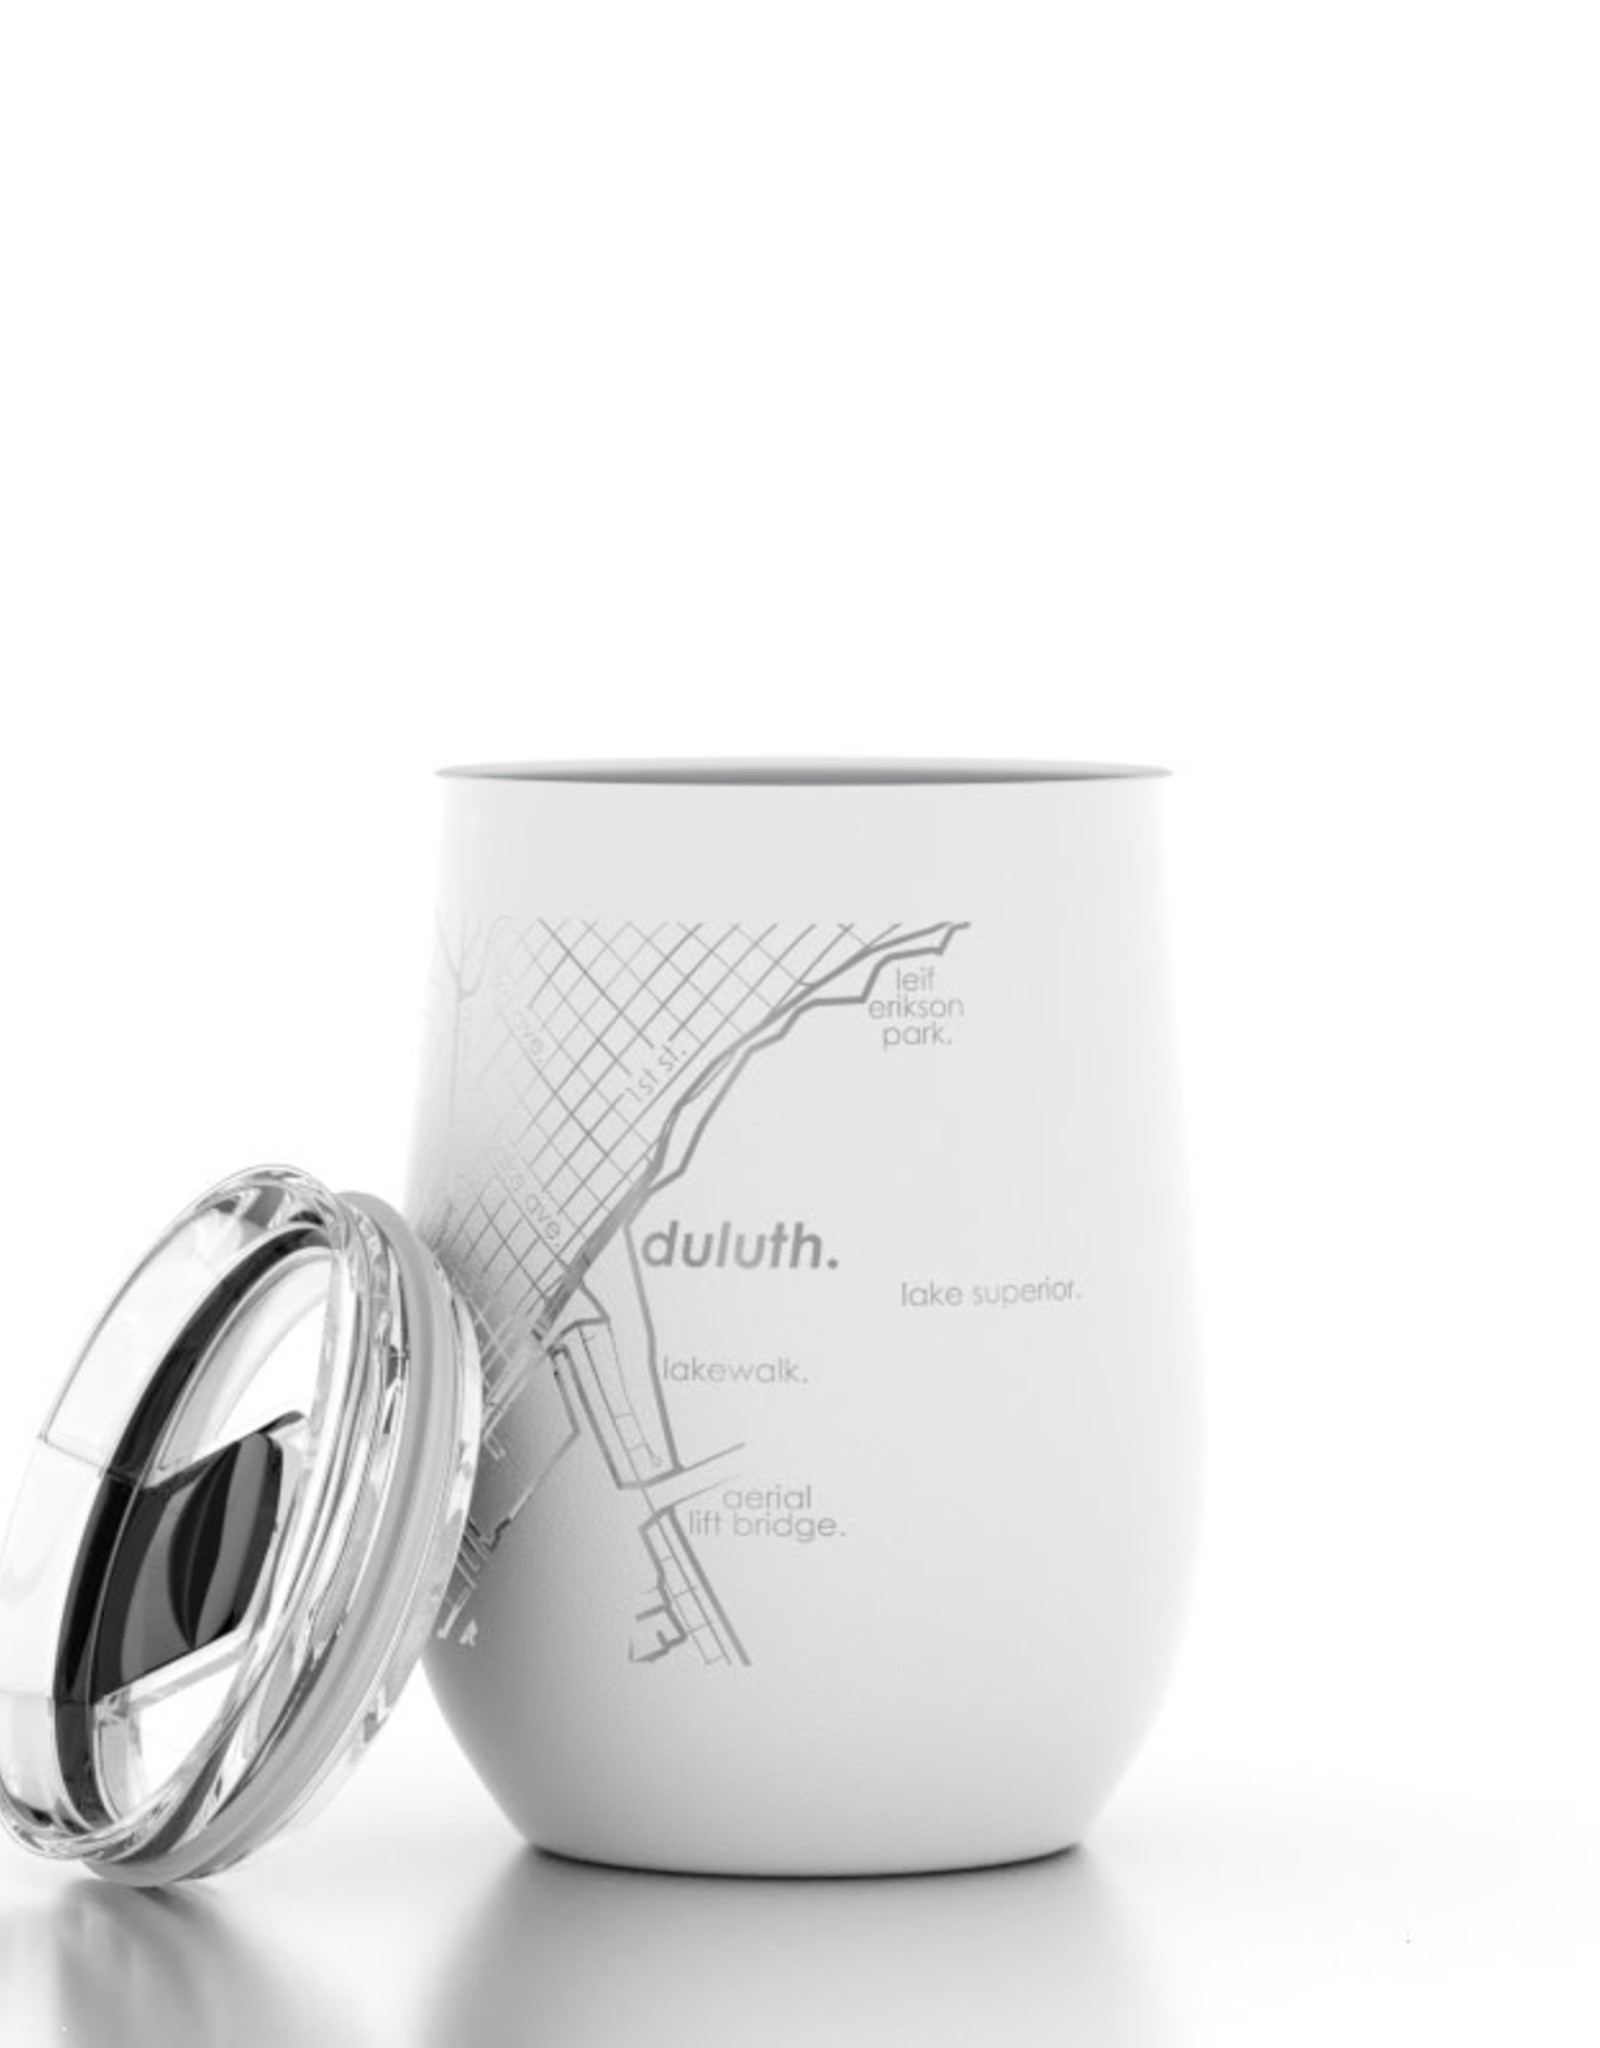 Well Told Duluth Insulated Stemless Wine 12 oz